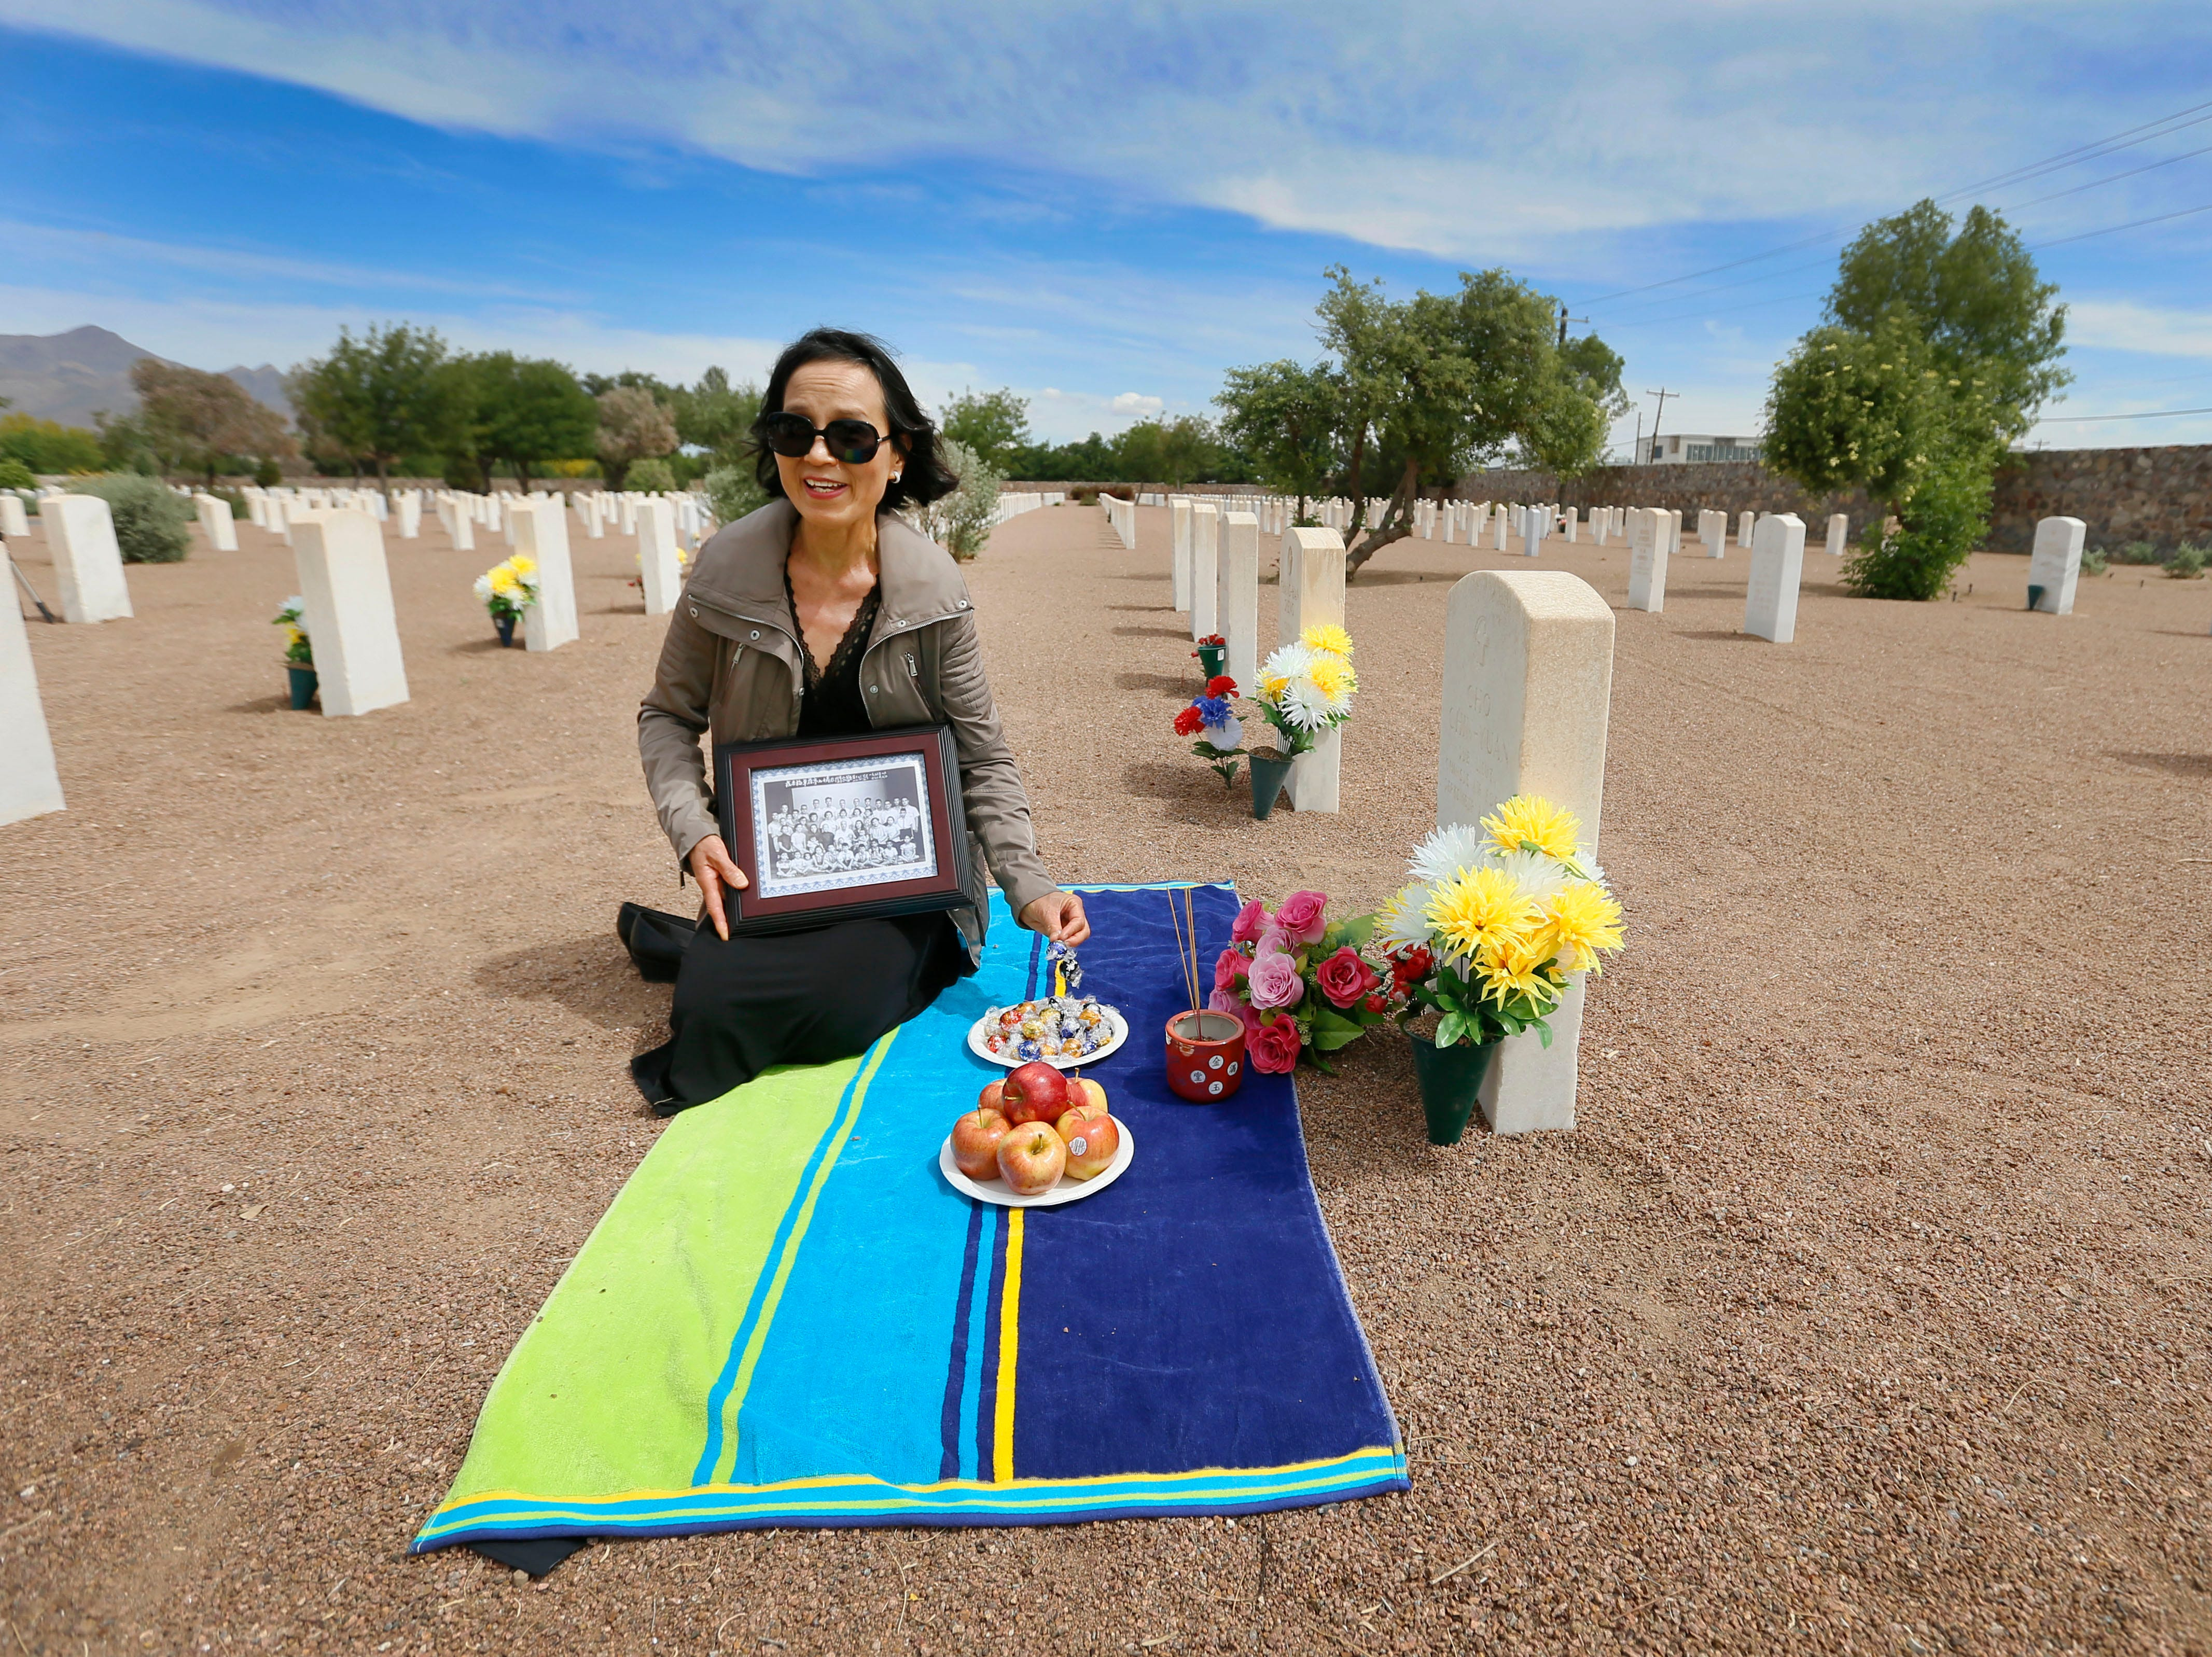 Jianwu Li takes apples, chocolates and incense to her great uncle Cho Chin-Yuan's burial site Monday, May 13, at Fort Bliss National Cemetery. Jianwu Li came from Sacramento, California after the Hunan LongYue Peace Charity Development Center informed her that her great uncle was buried there. She brought a family photo with her. She said he had already passed away by the time the family photo was taken. The Hunan LongYue Peace Charity Development Center brought family members to El Paso to pay a special remembrance to their relatives who are amongst the 52 Chinese pilots who died in the U.S. during flight training in World War II.